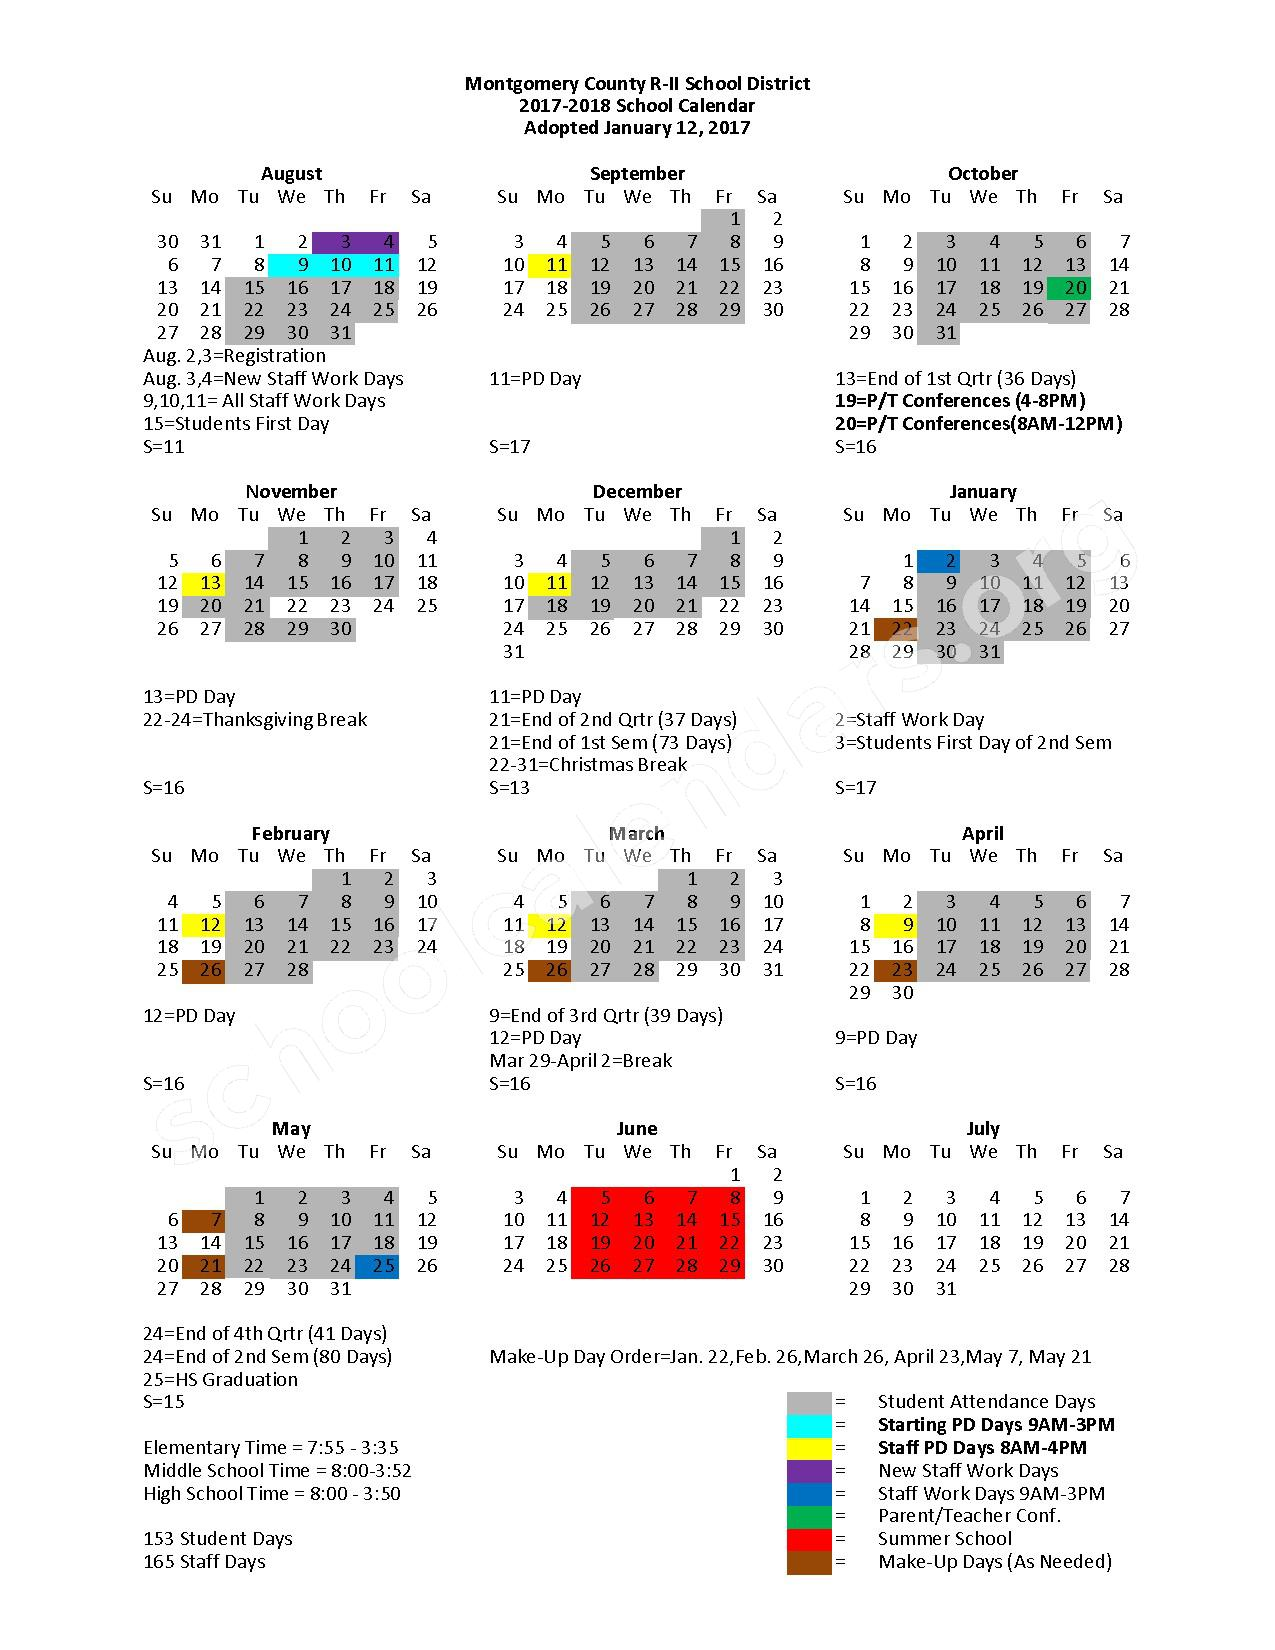 2017 - 2018 District Calendar – Montgomery County R-II School District – page 1